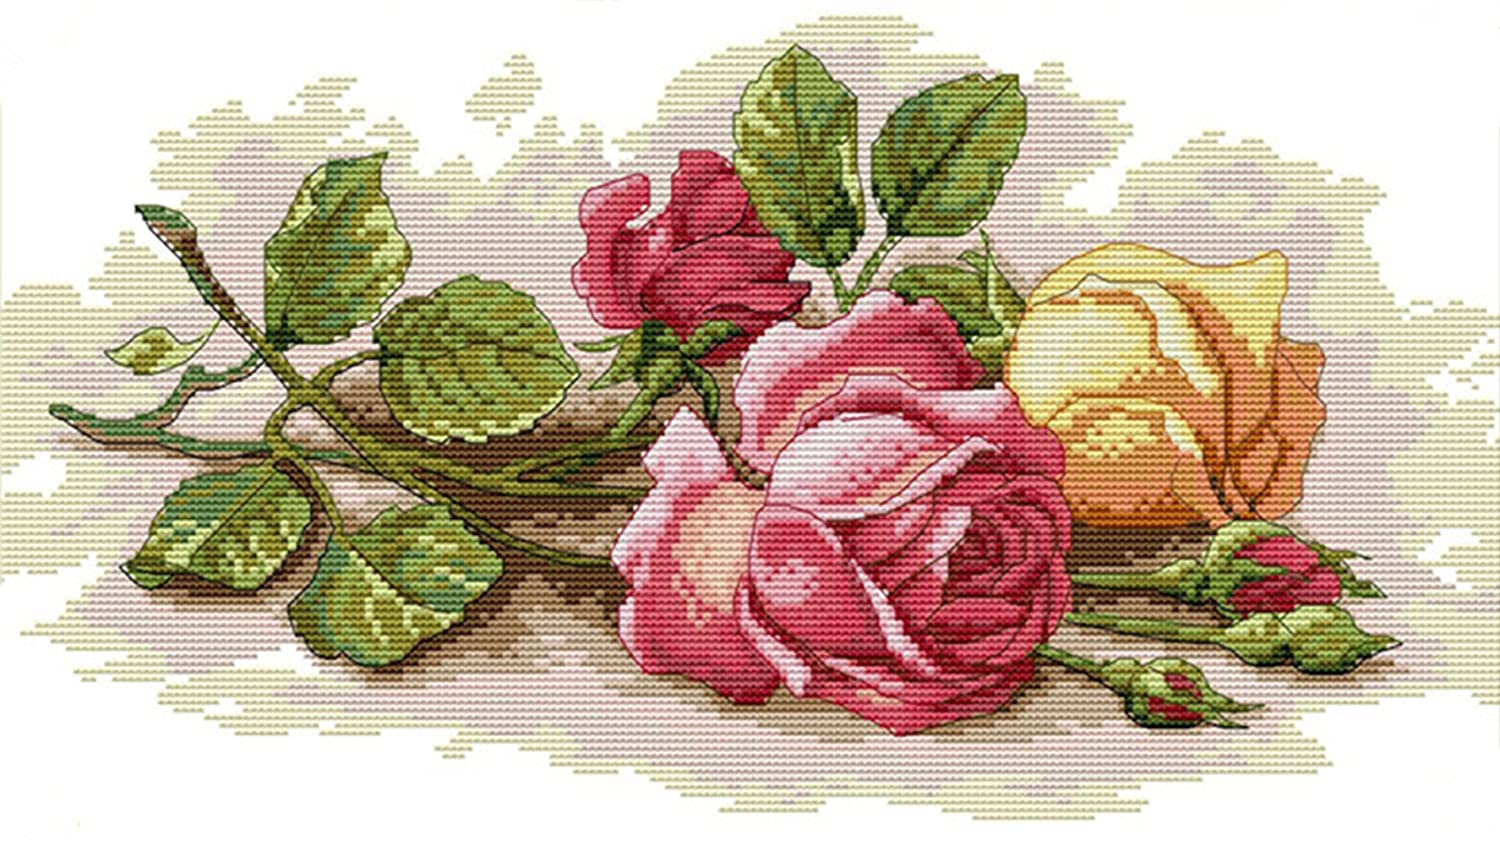 """eGoodn Cross Stitch Stamped Kit Pre-printed Pattern Birds And Flowers, 11CT Aida Fabric Size 16.5"""" x 24 For Embroidery Needlework Art Crafts Lovers, No Frame ED91"""